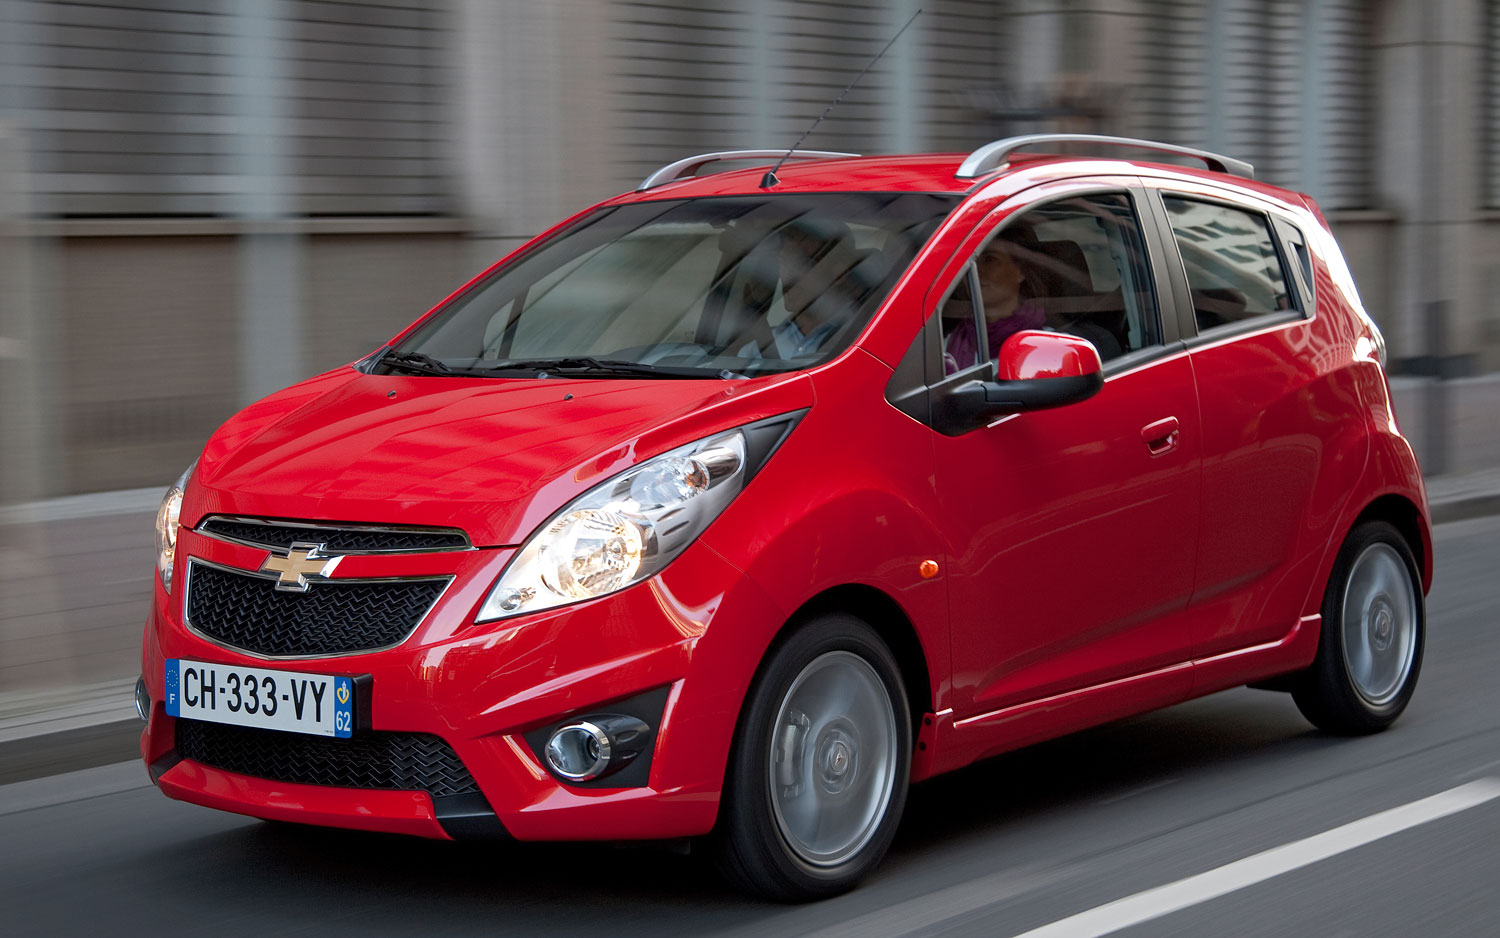 confirmed: chevrolet spark subcompact coming to u.s. market